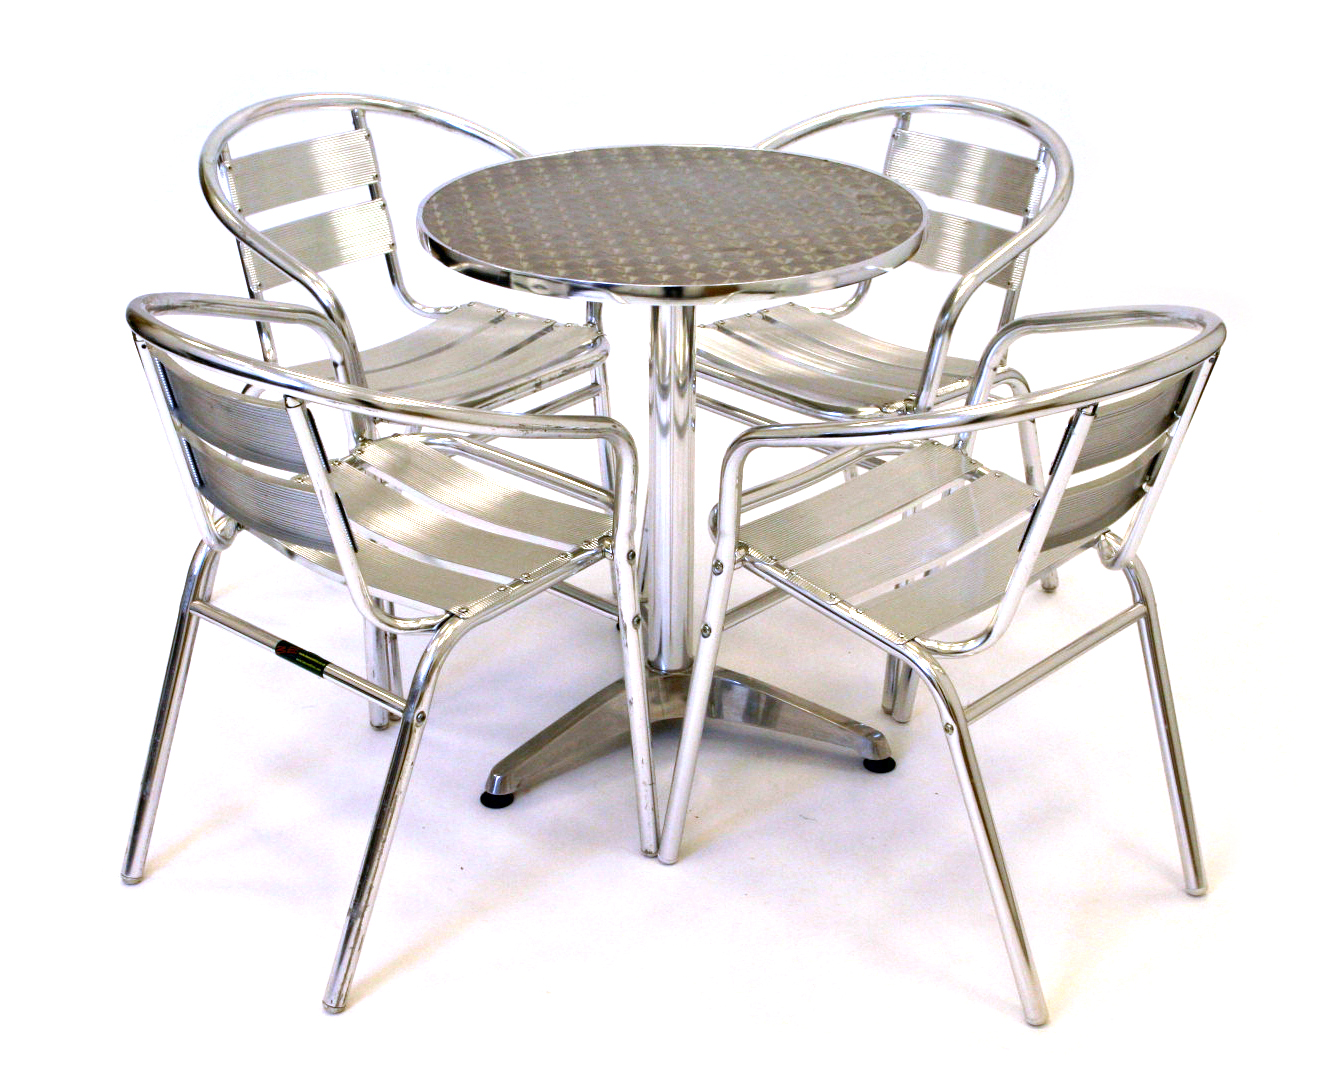 Aluminium Cafe Set - Cafe's, Bistro & Home Garden - BE Furniture Sales